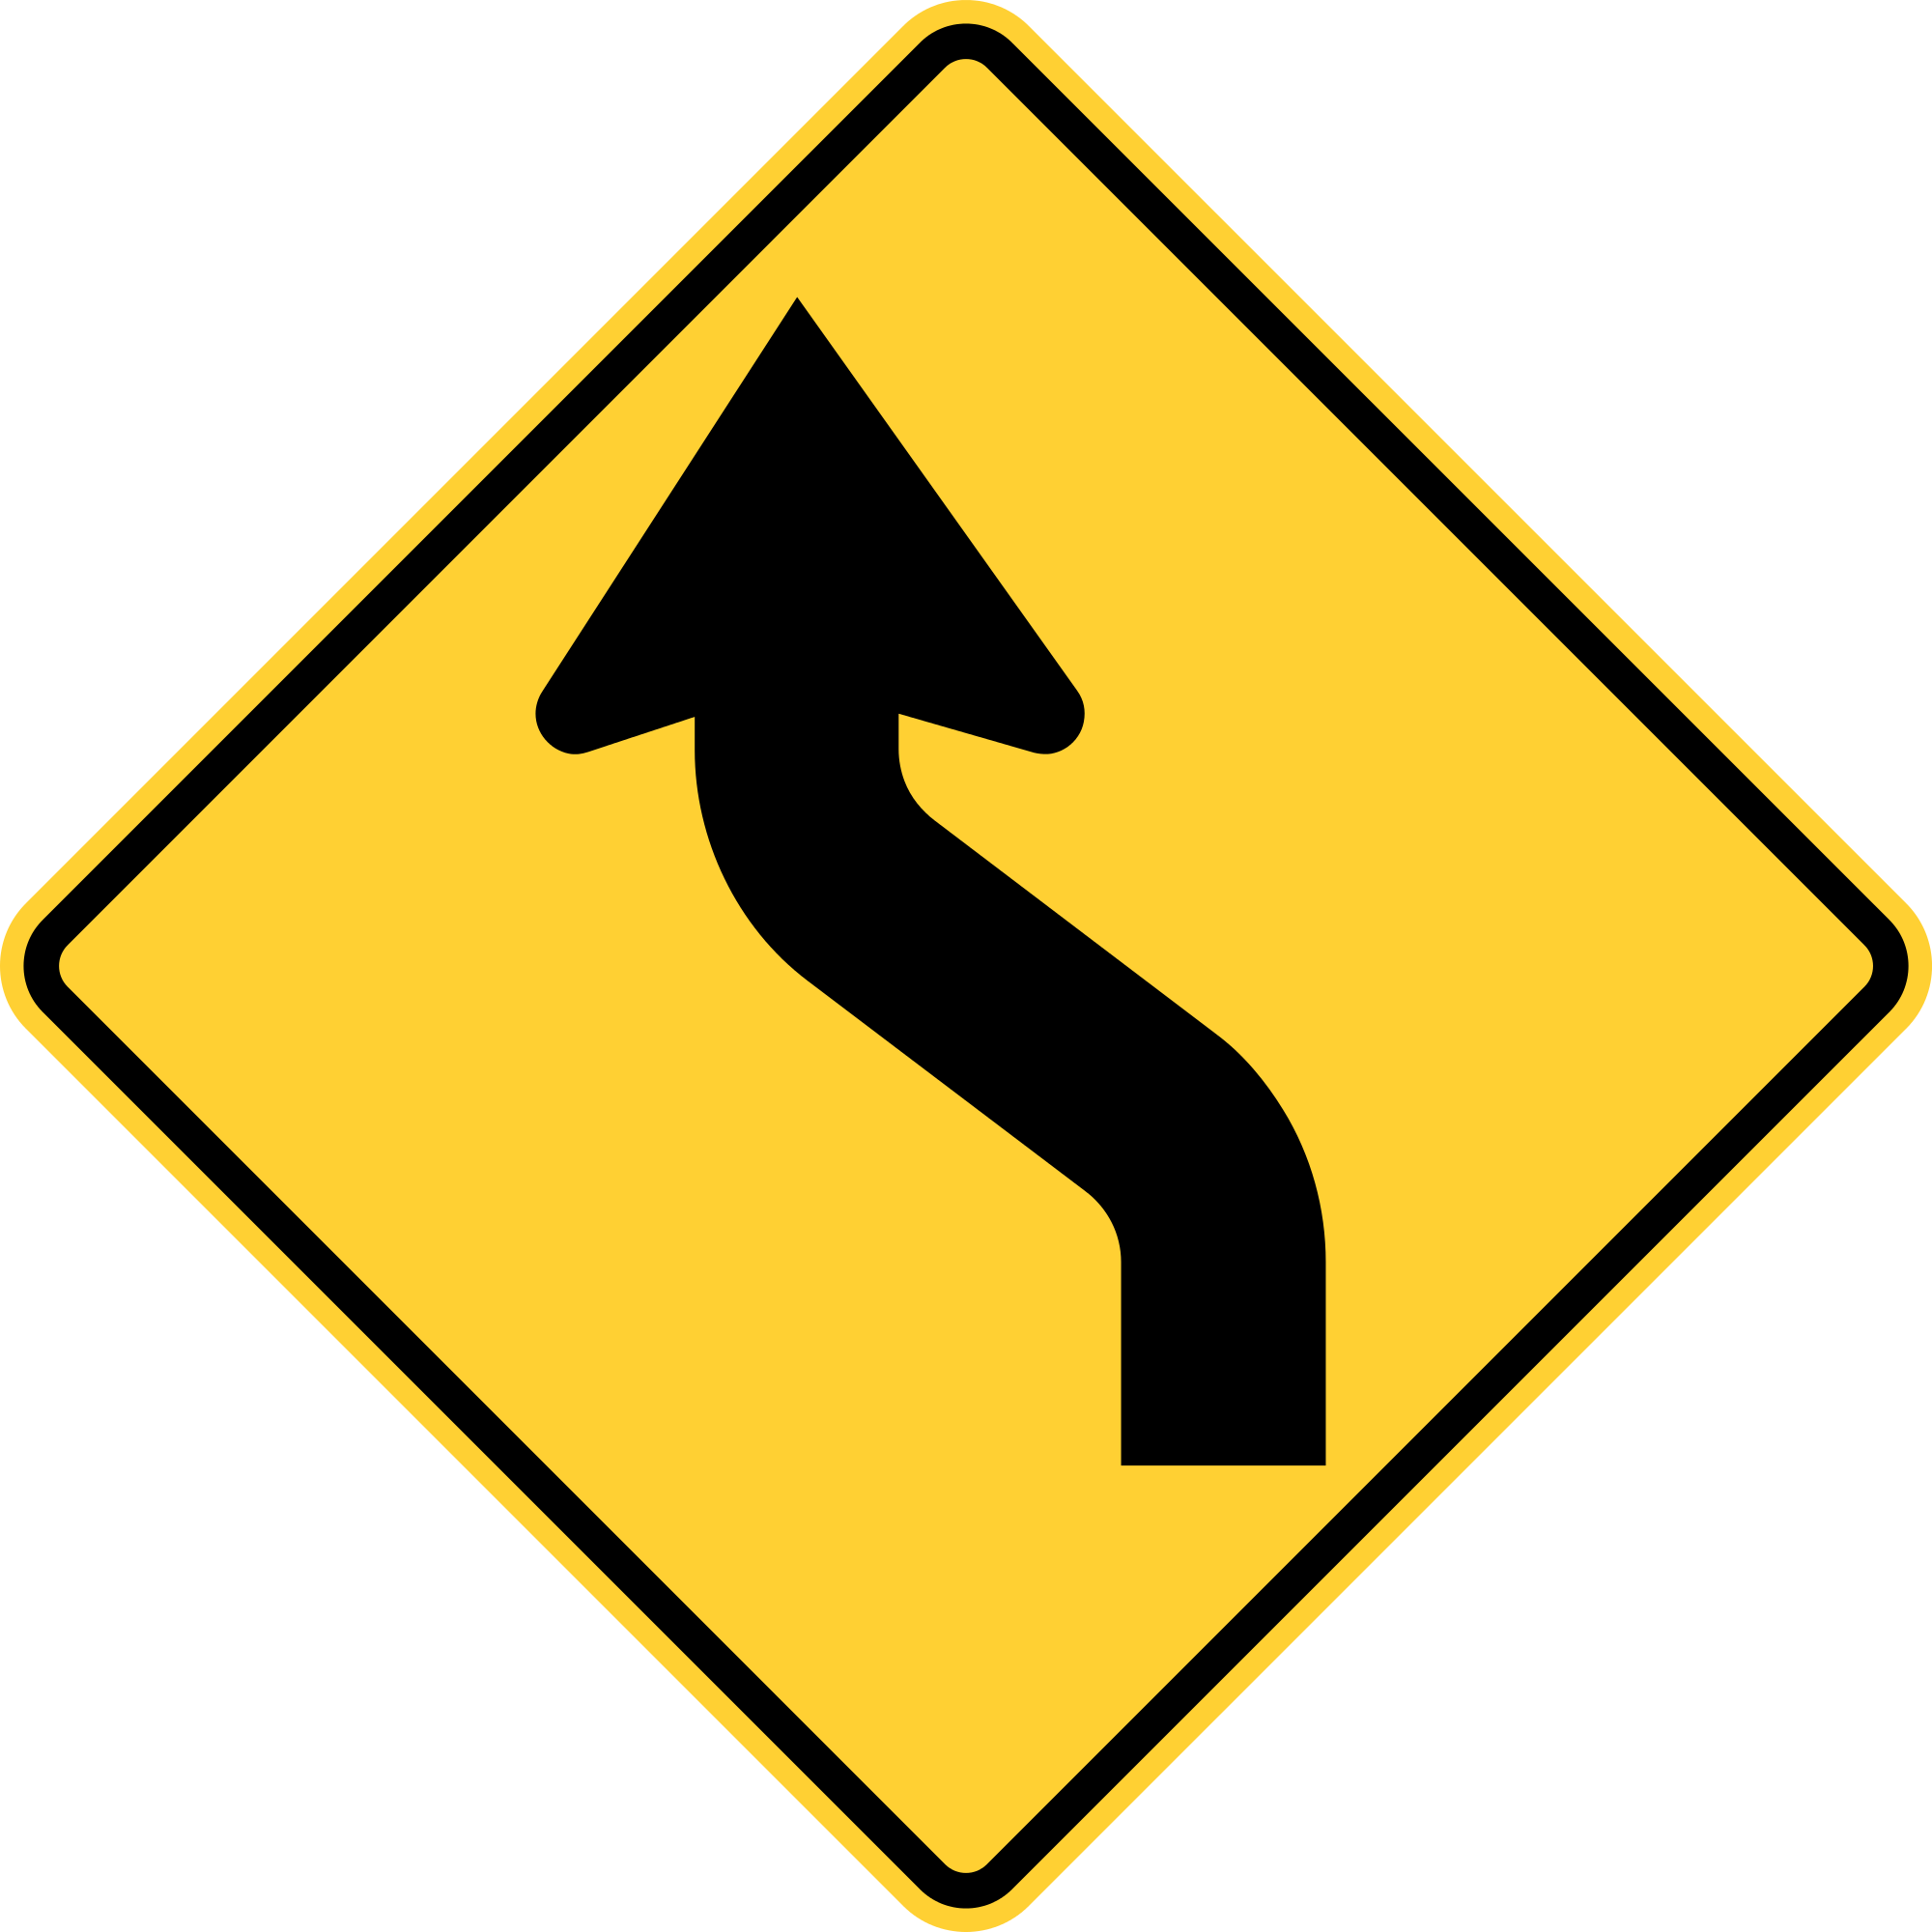 W1-4L Warning Sign